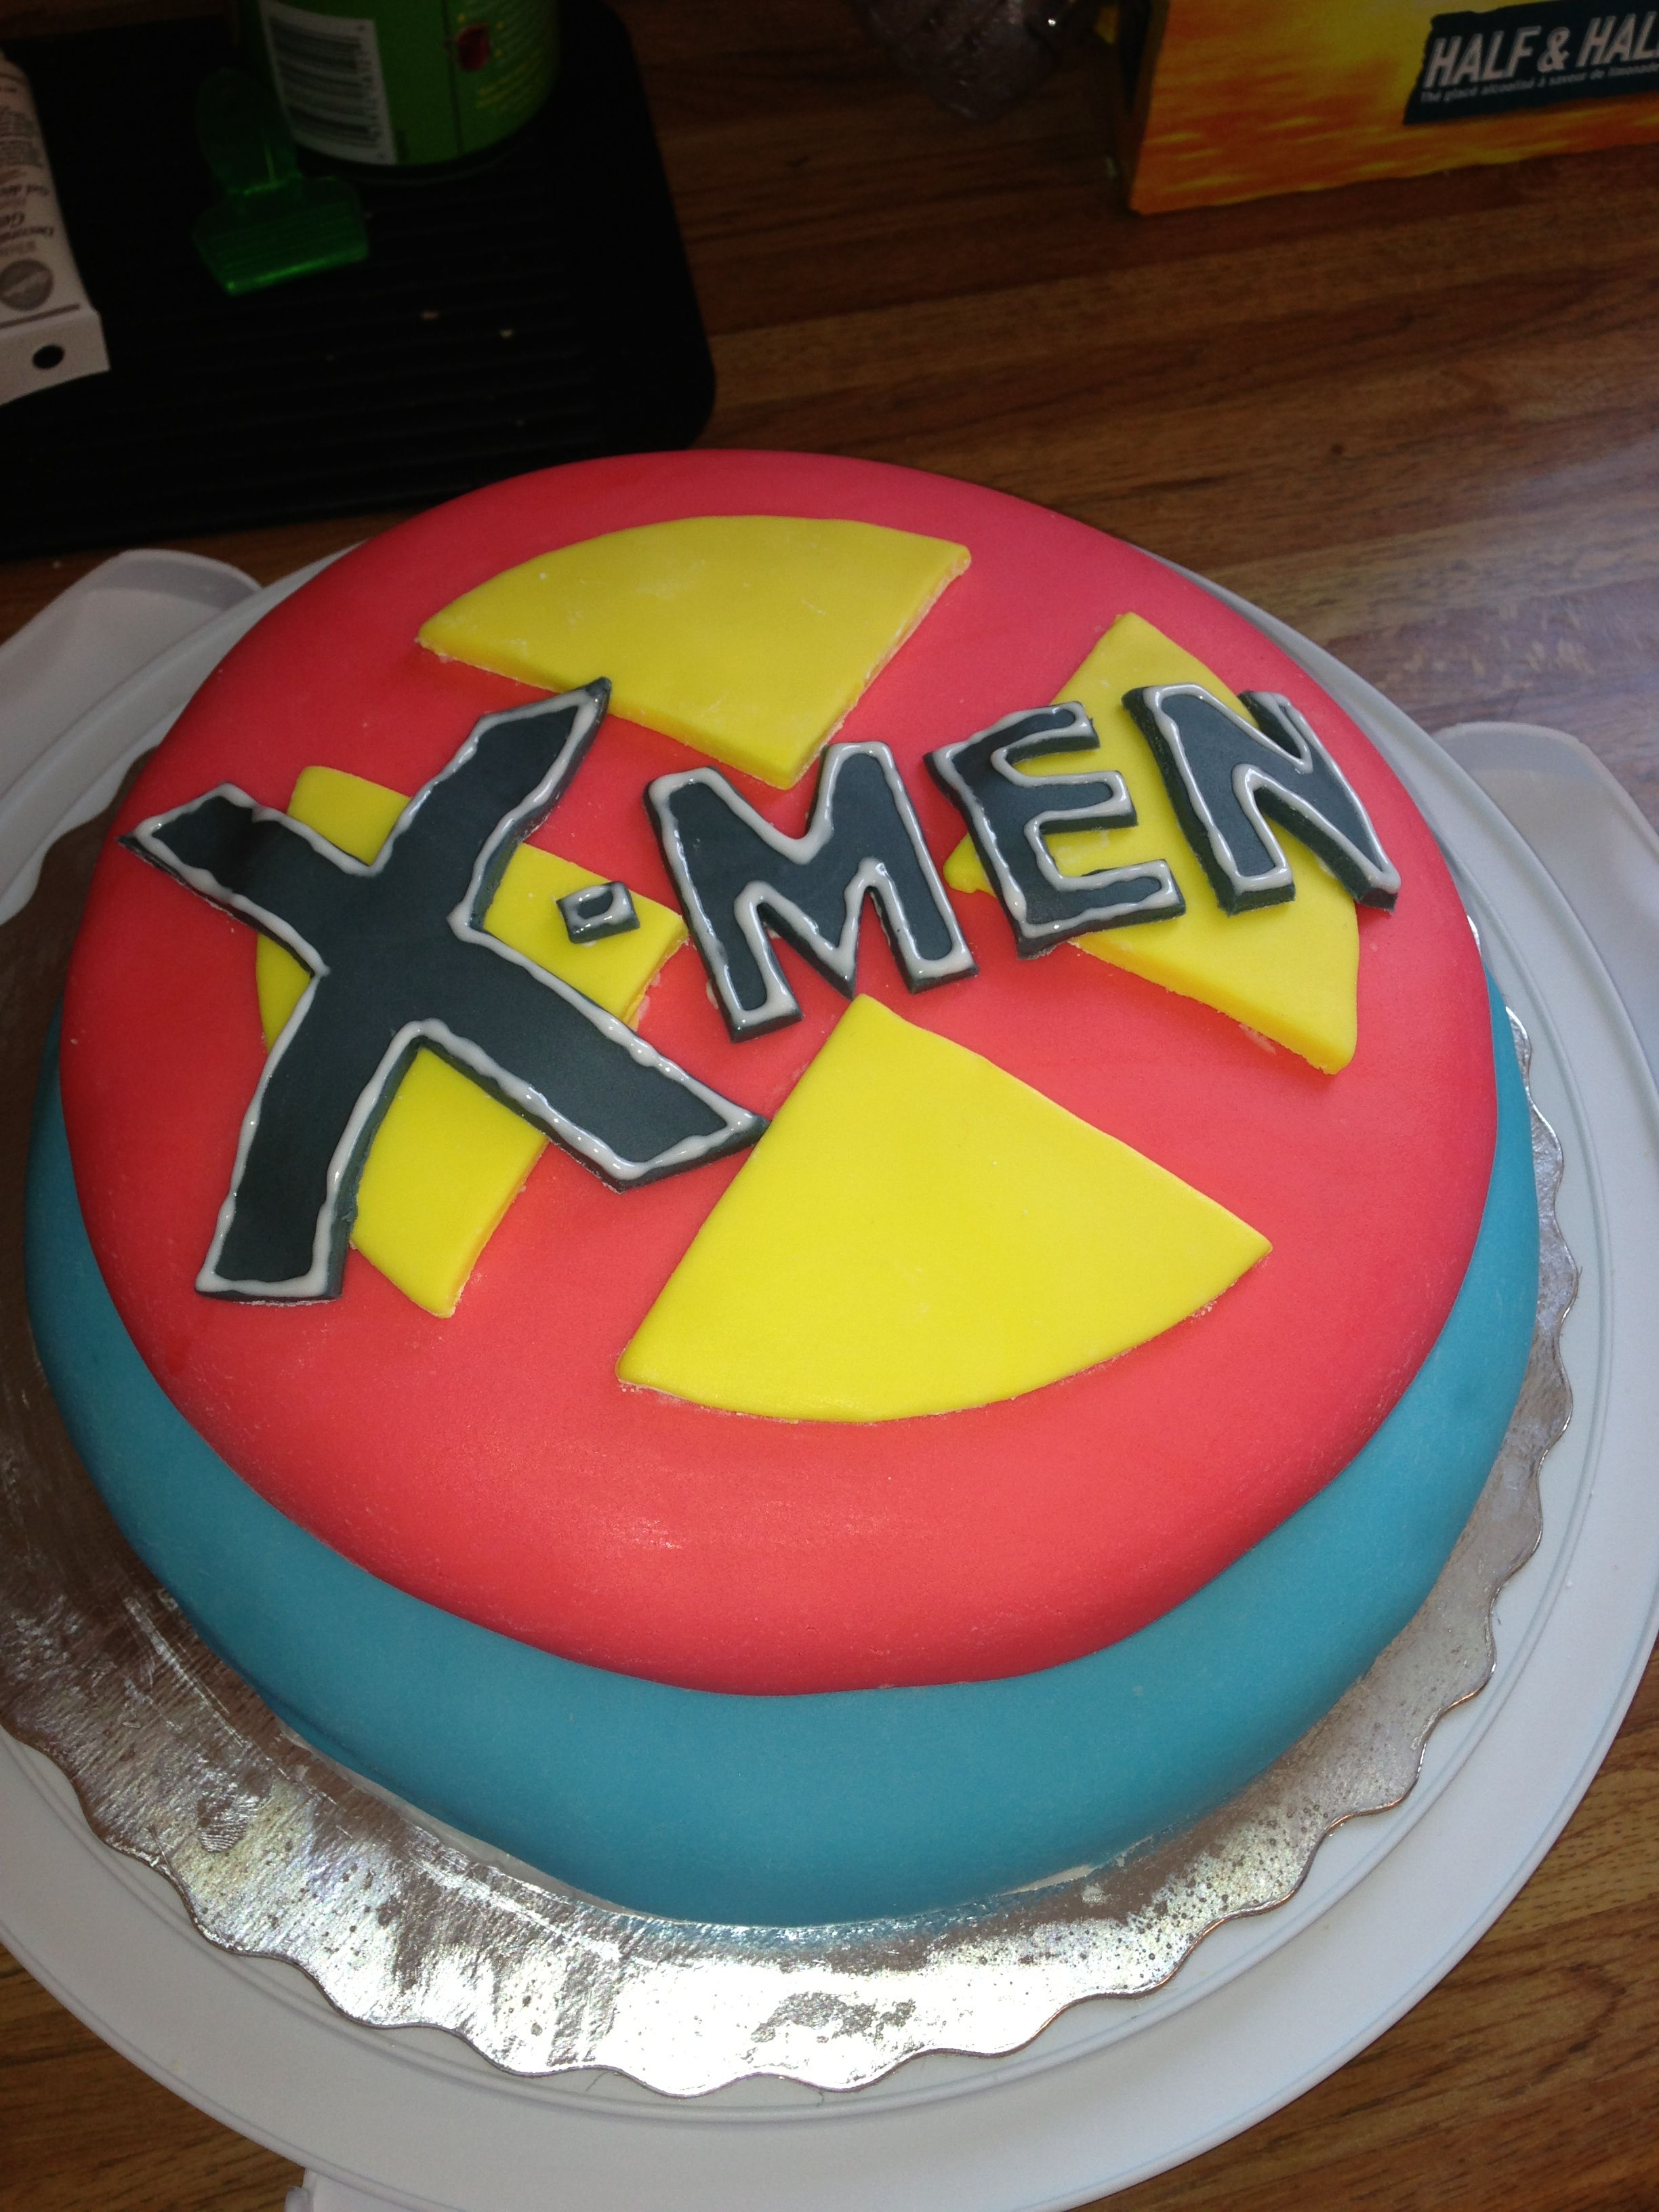 X-men cake that I made | Cakes! in 2019 | Cake, Boy birthday parties ...